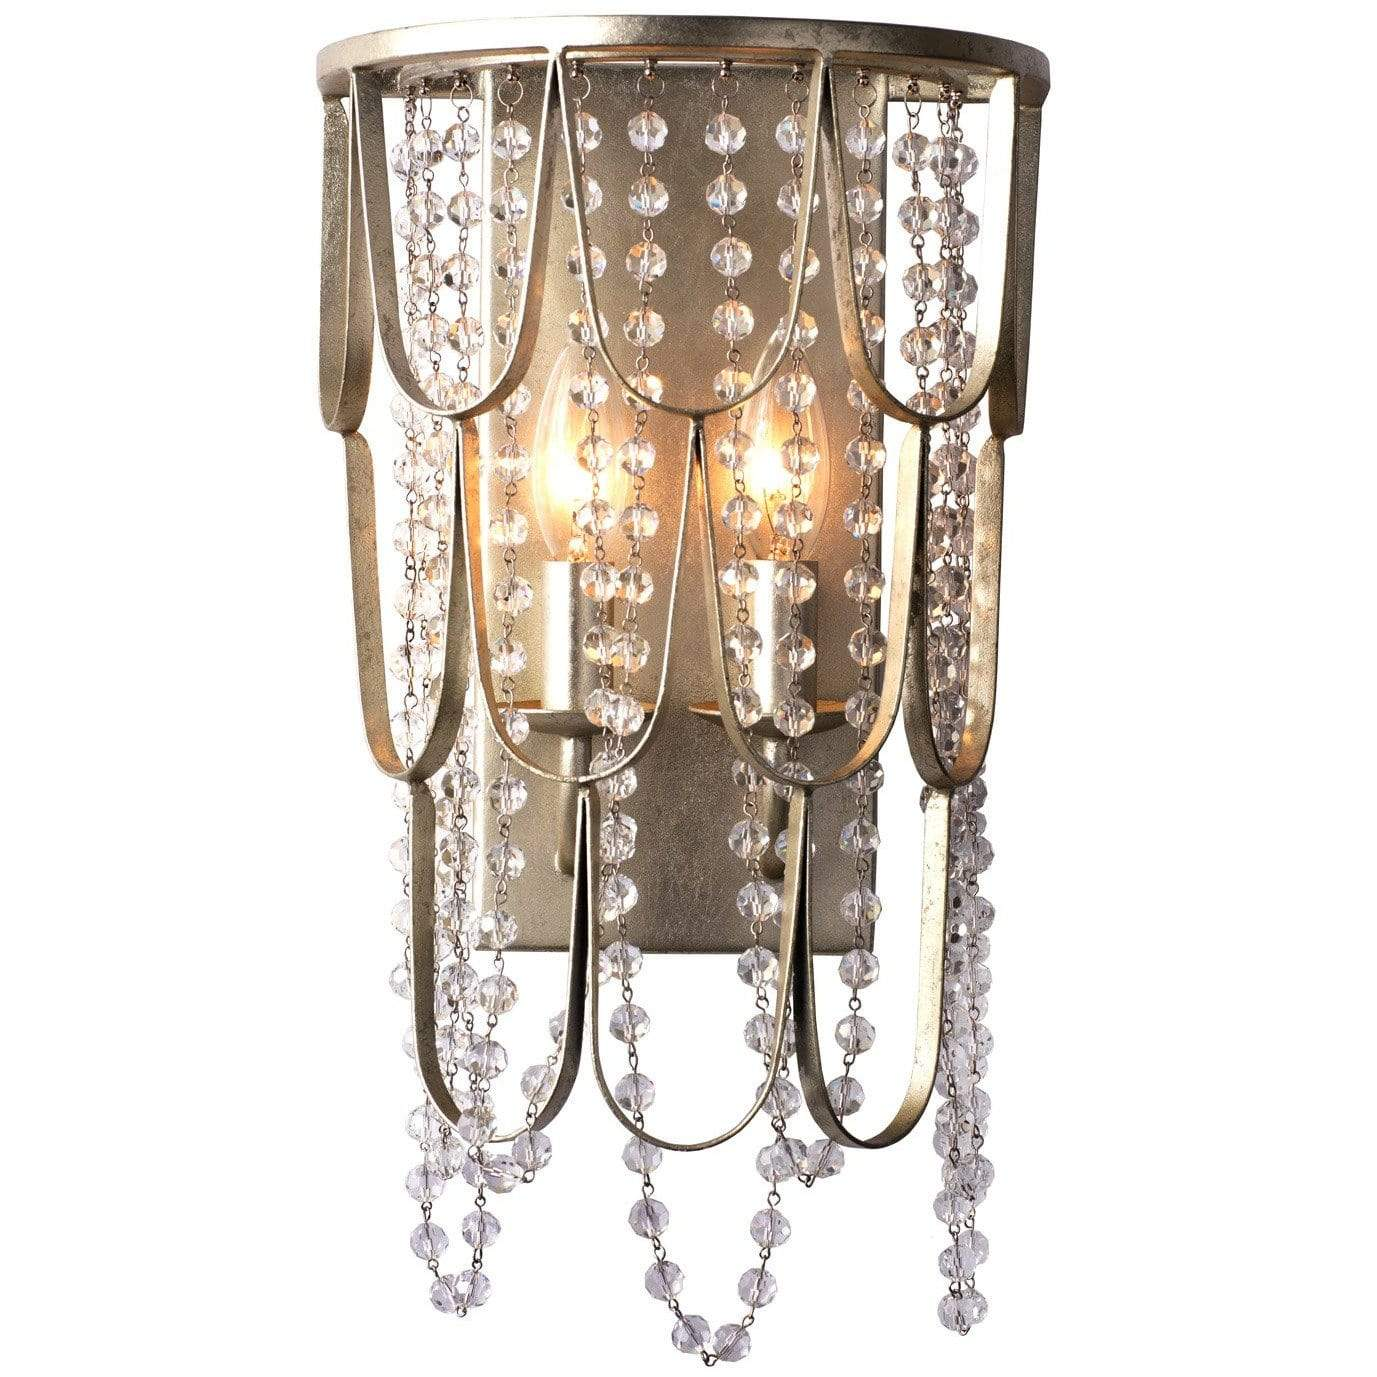 Kalco Lighting Wall Sconces Champagne Silver Leaf Dulce 2 Light Wall Sconce By Kalco Lighting 508820